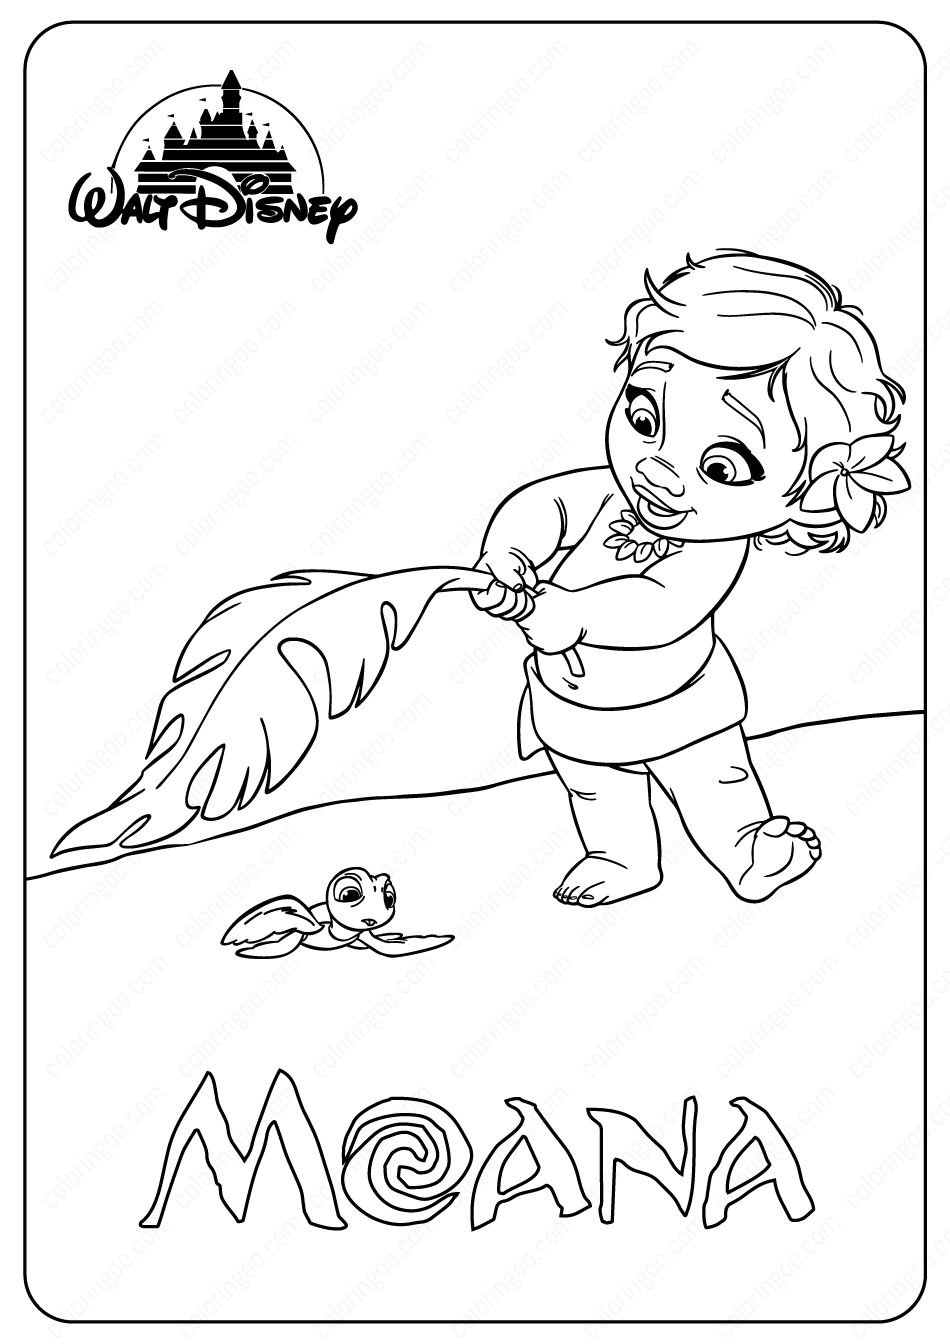 Baby Moana Coloring Pages Moana Coloring Pages Disney Coloring Pages Printables Moana Coloring